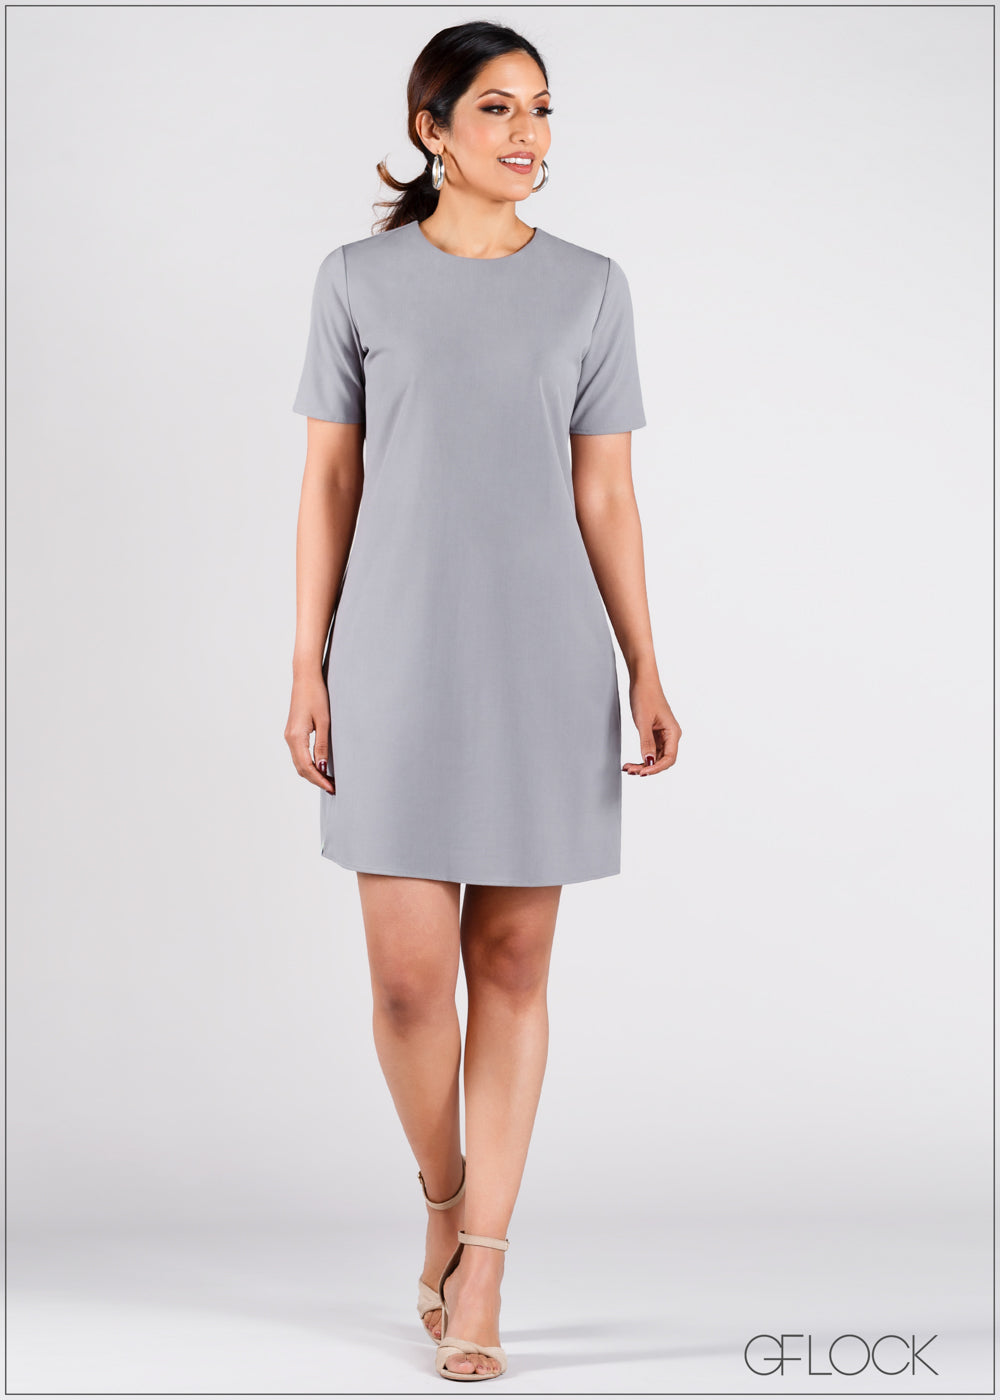 Shift Dress - CAP203